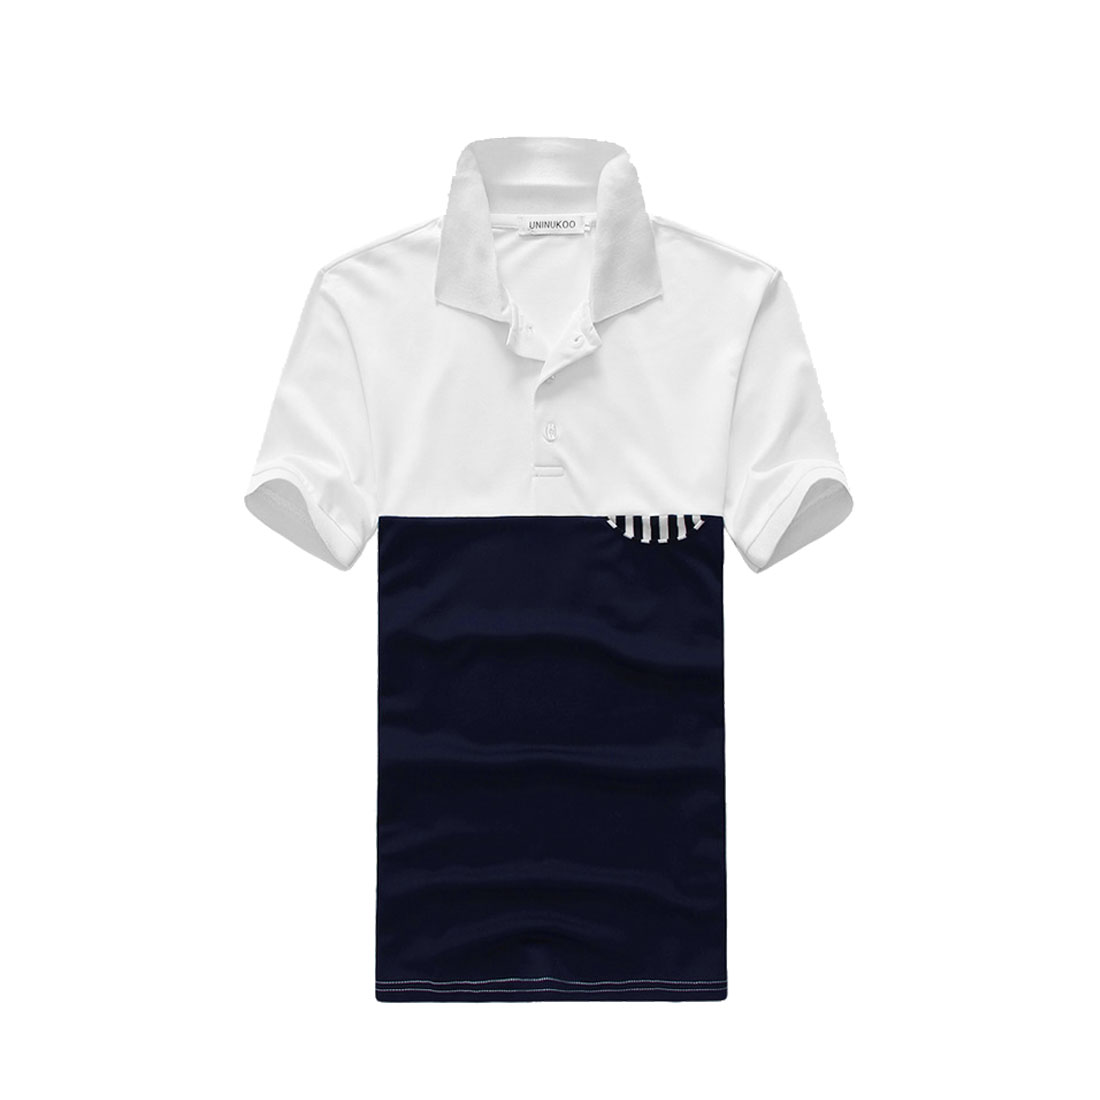 Man Chic Short Sleeve Contrast Color Splice Dark Blue White Polo Shirt M